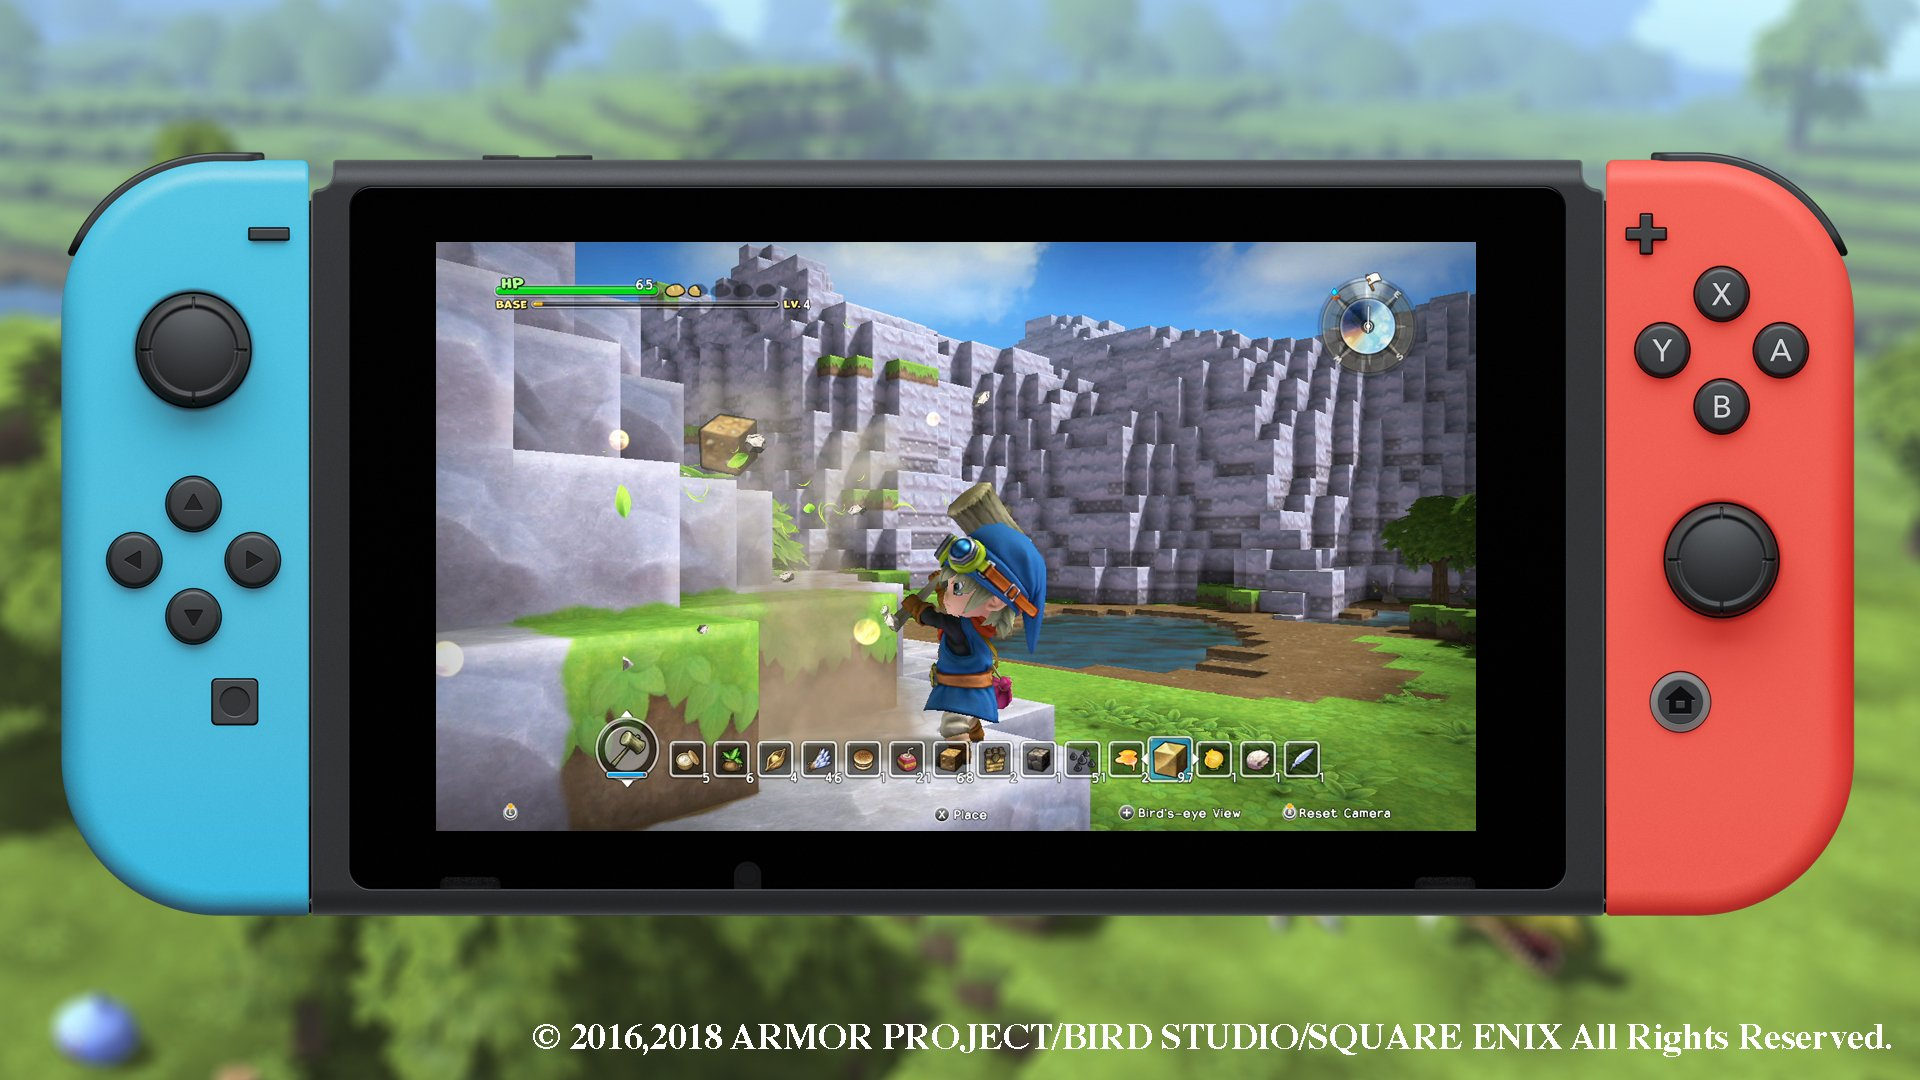 A demo for #DQBuilders is now available to download in Nintendo eShop for #NintendoSwitch! https://t.co/MGummTRM2S https://t.co/SyqeFR42pv